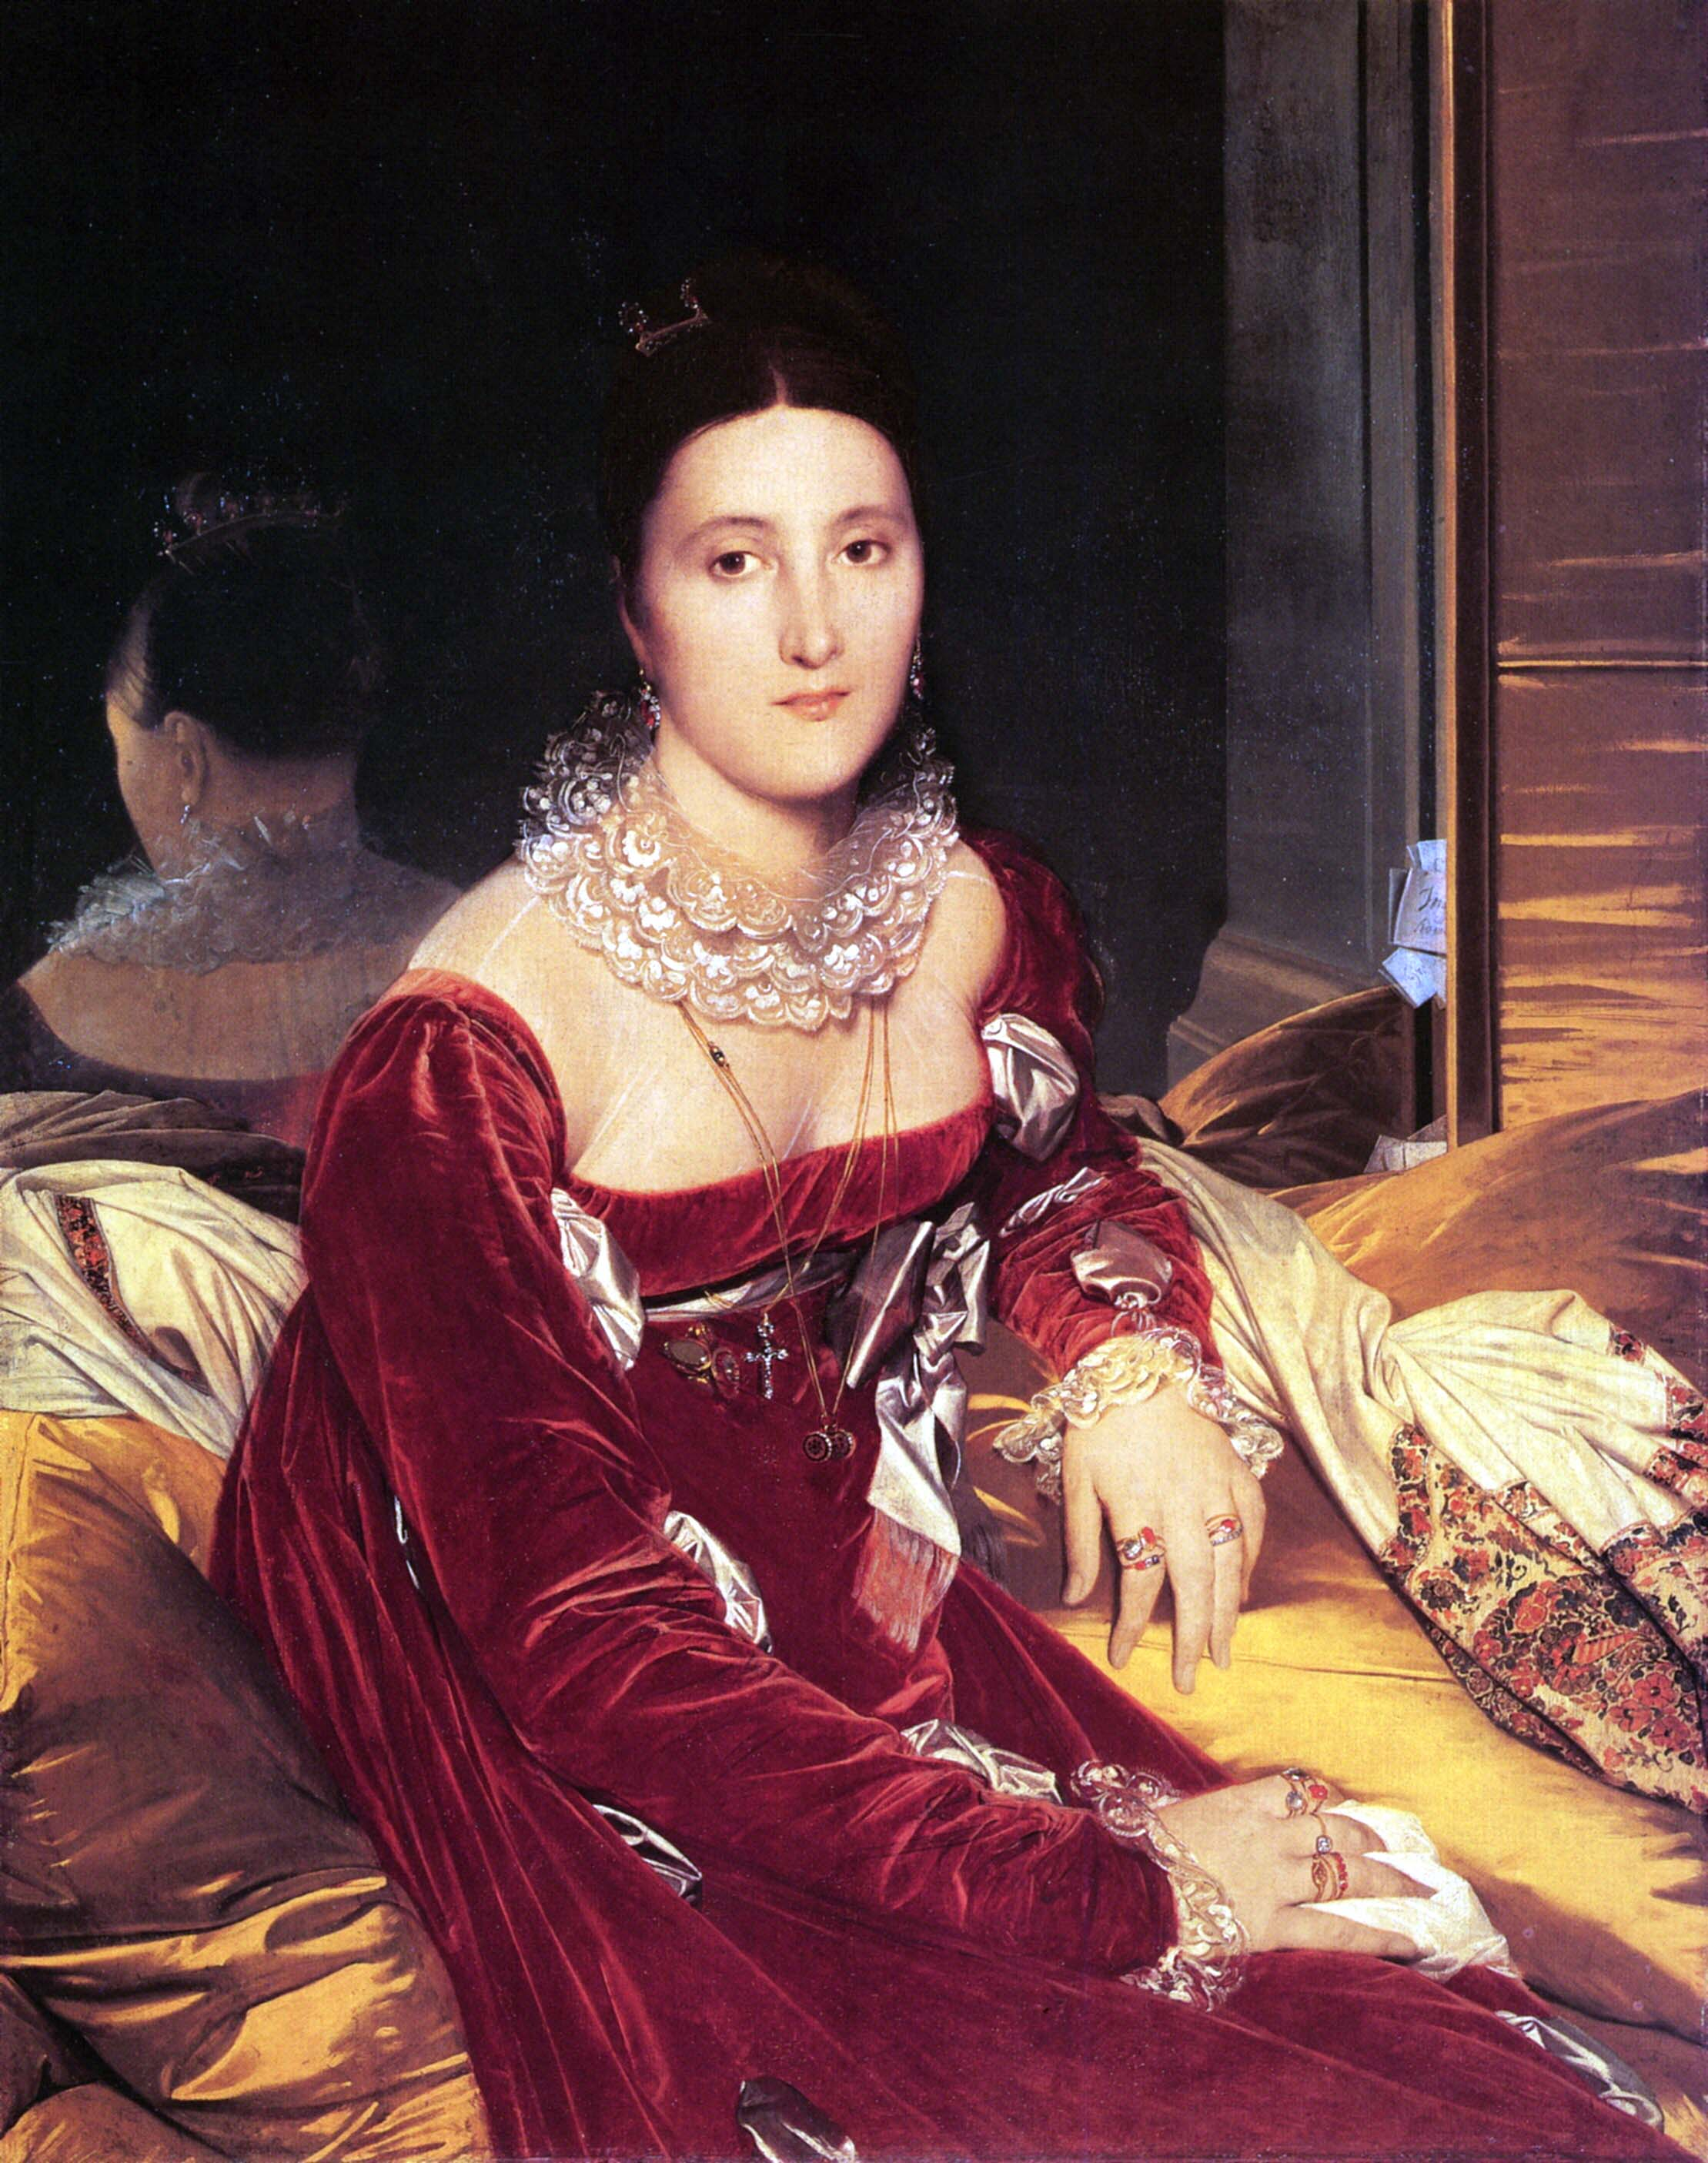 The Representation of Jewels in European Painting